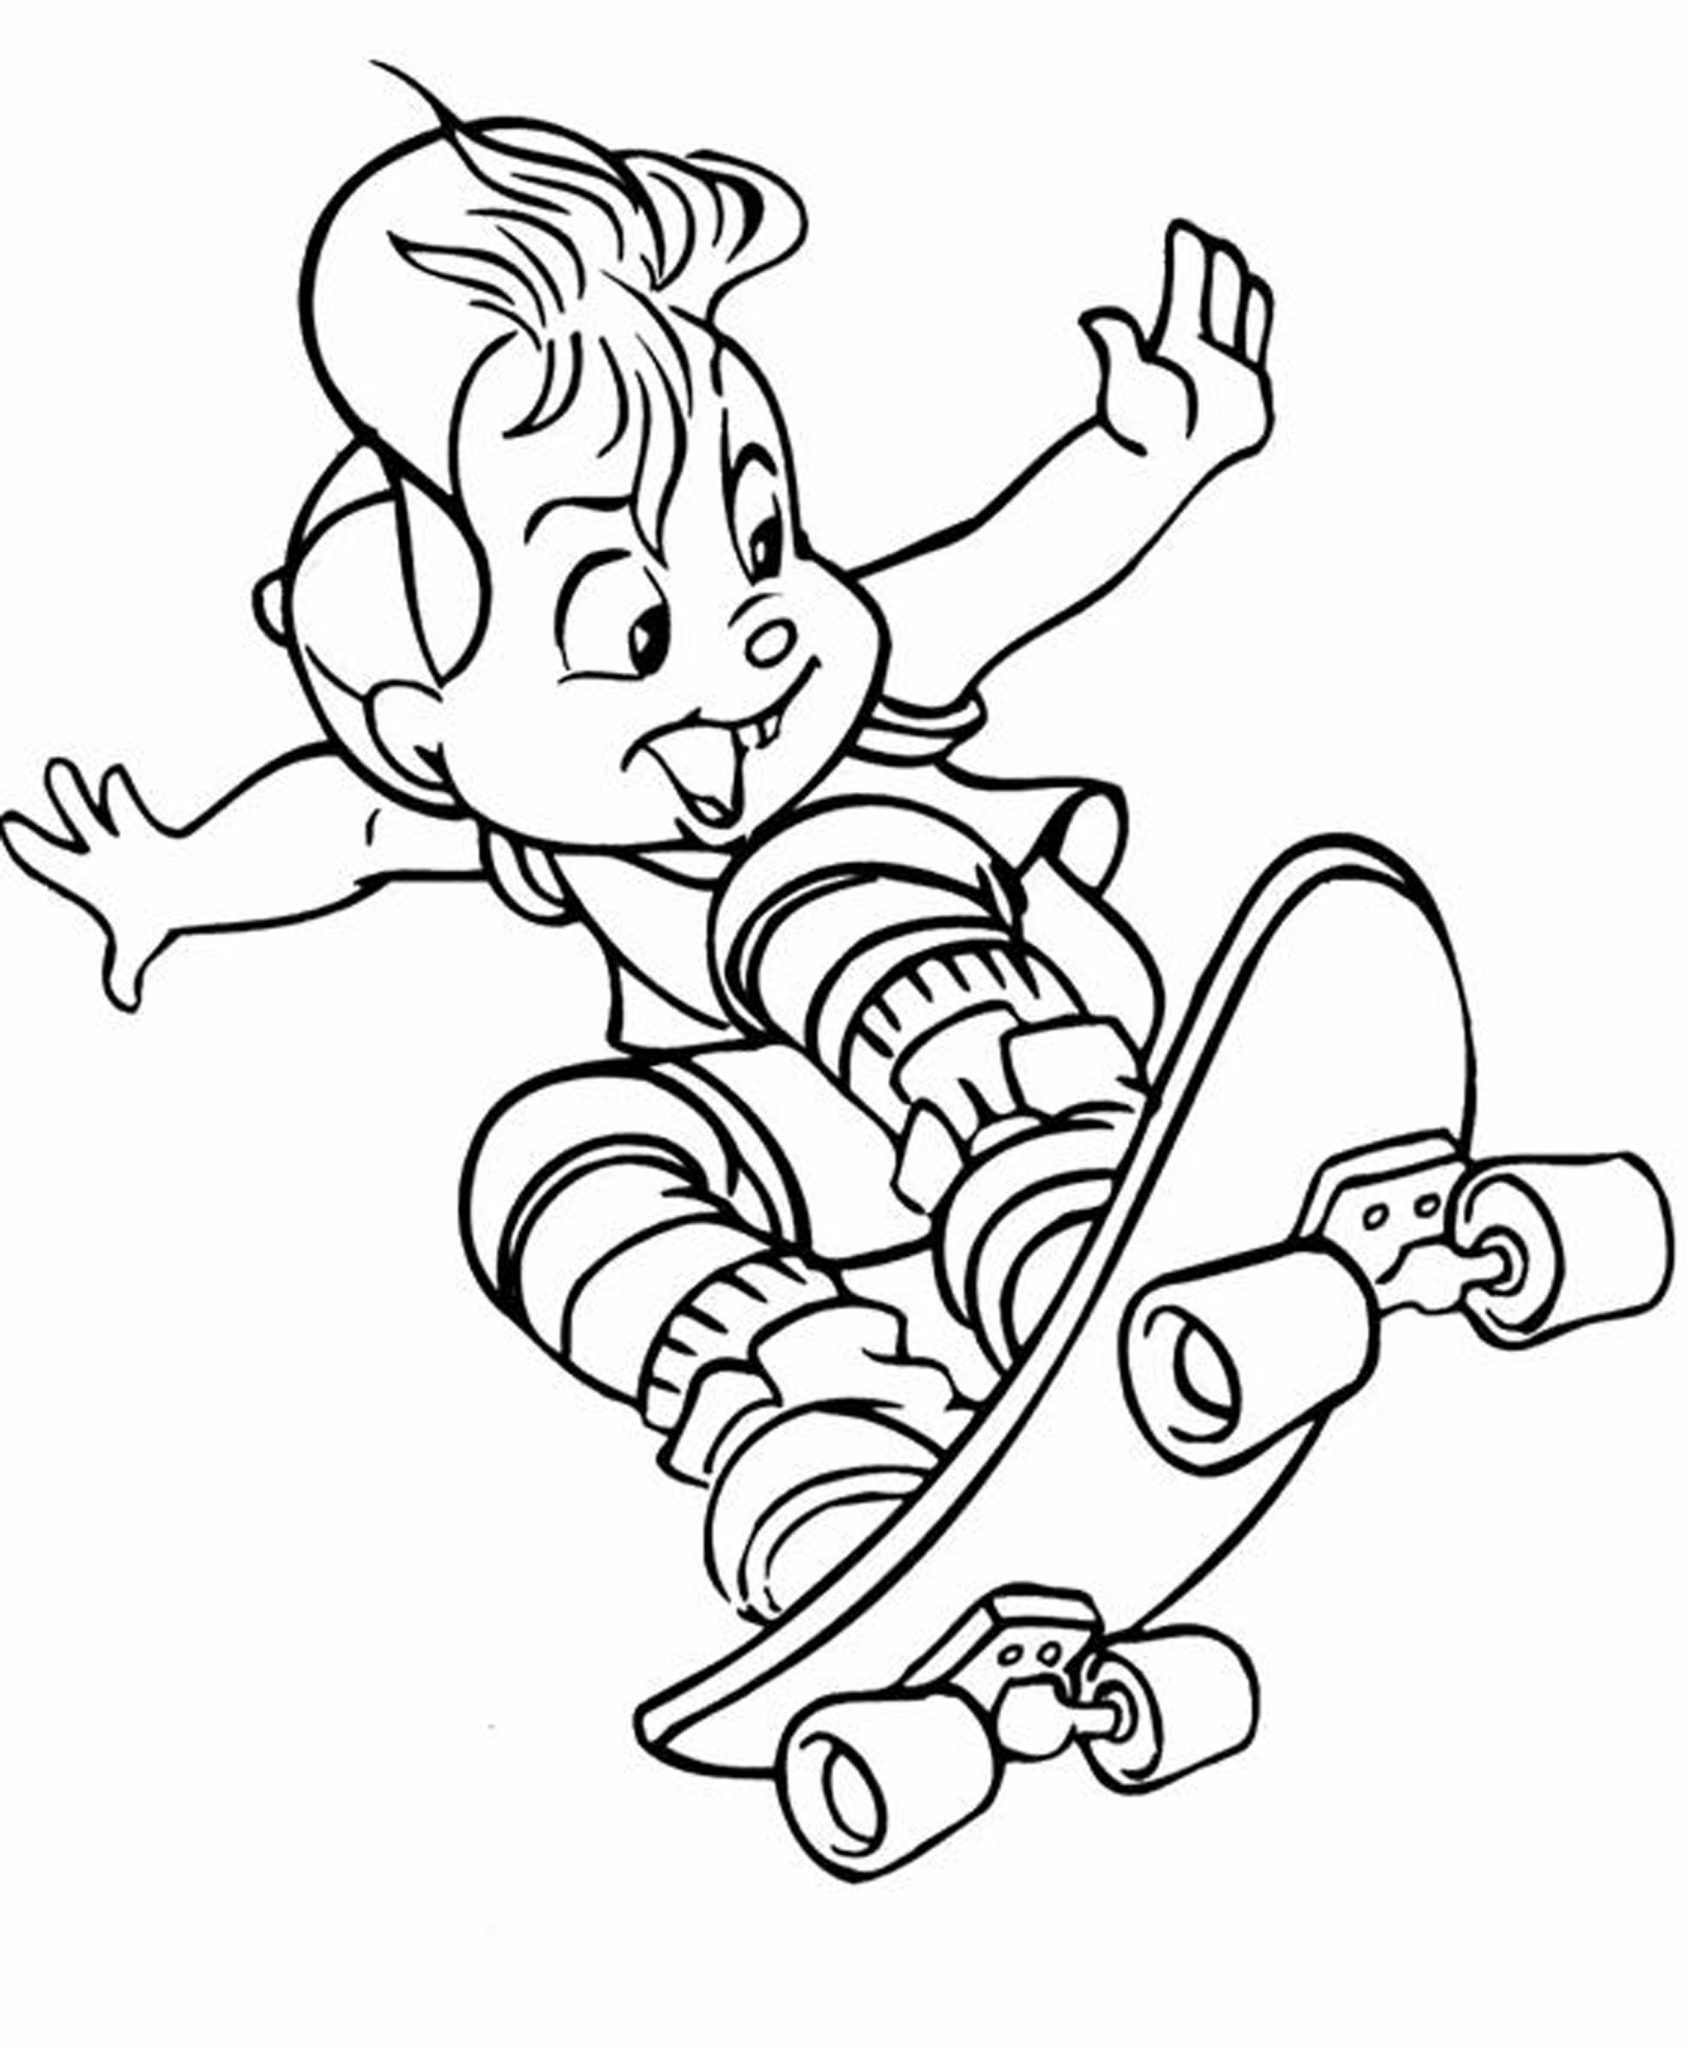 coloring sheets for boys boys coloring pages coloring boys sheets for